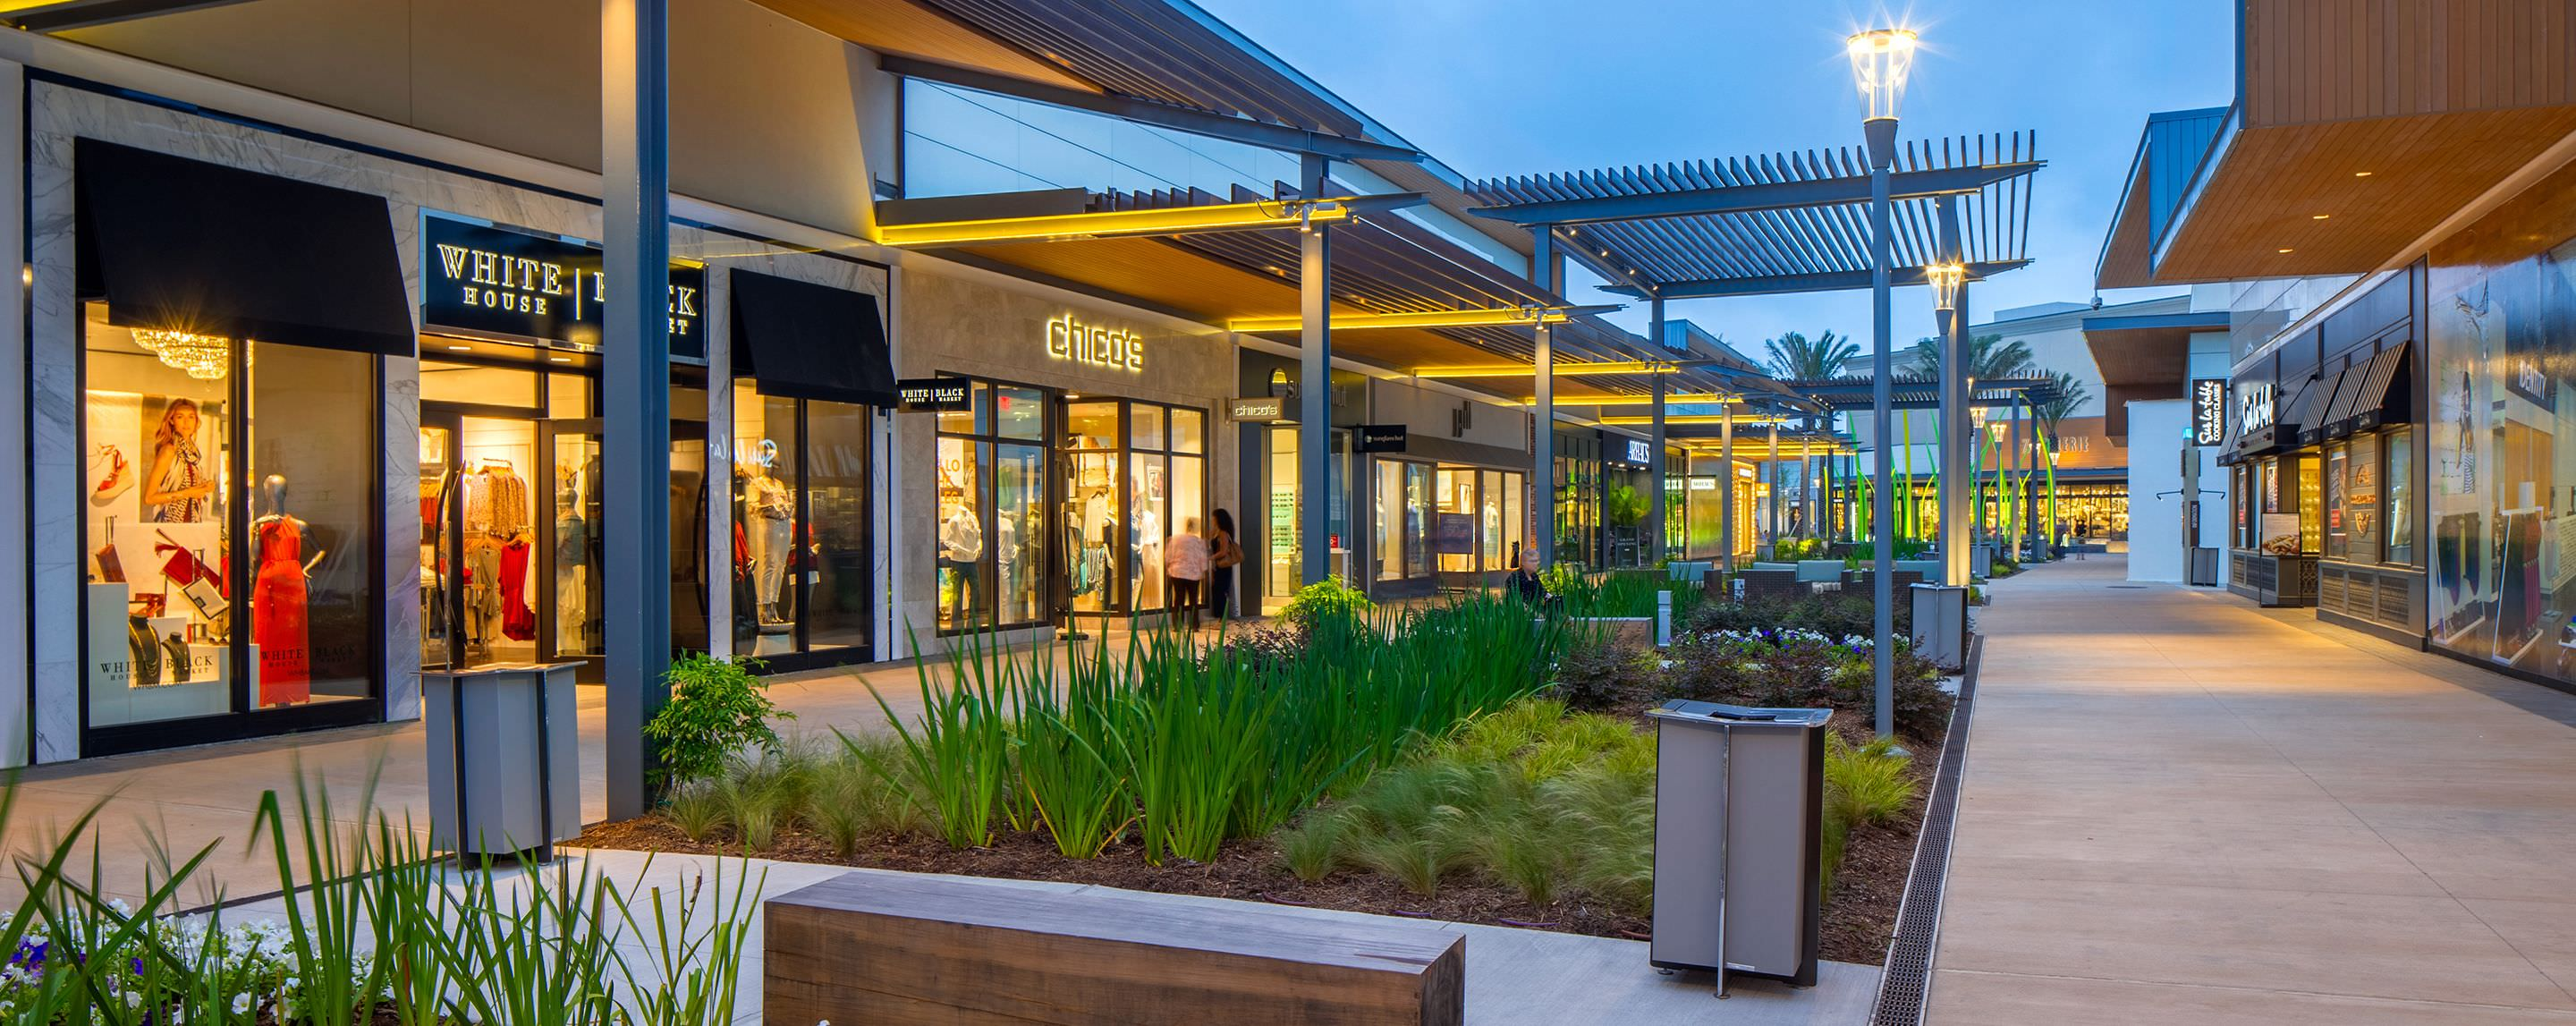 At night, an outdoor walkway is filled with store fronts welcoming shoppers.